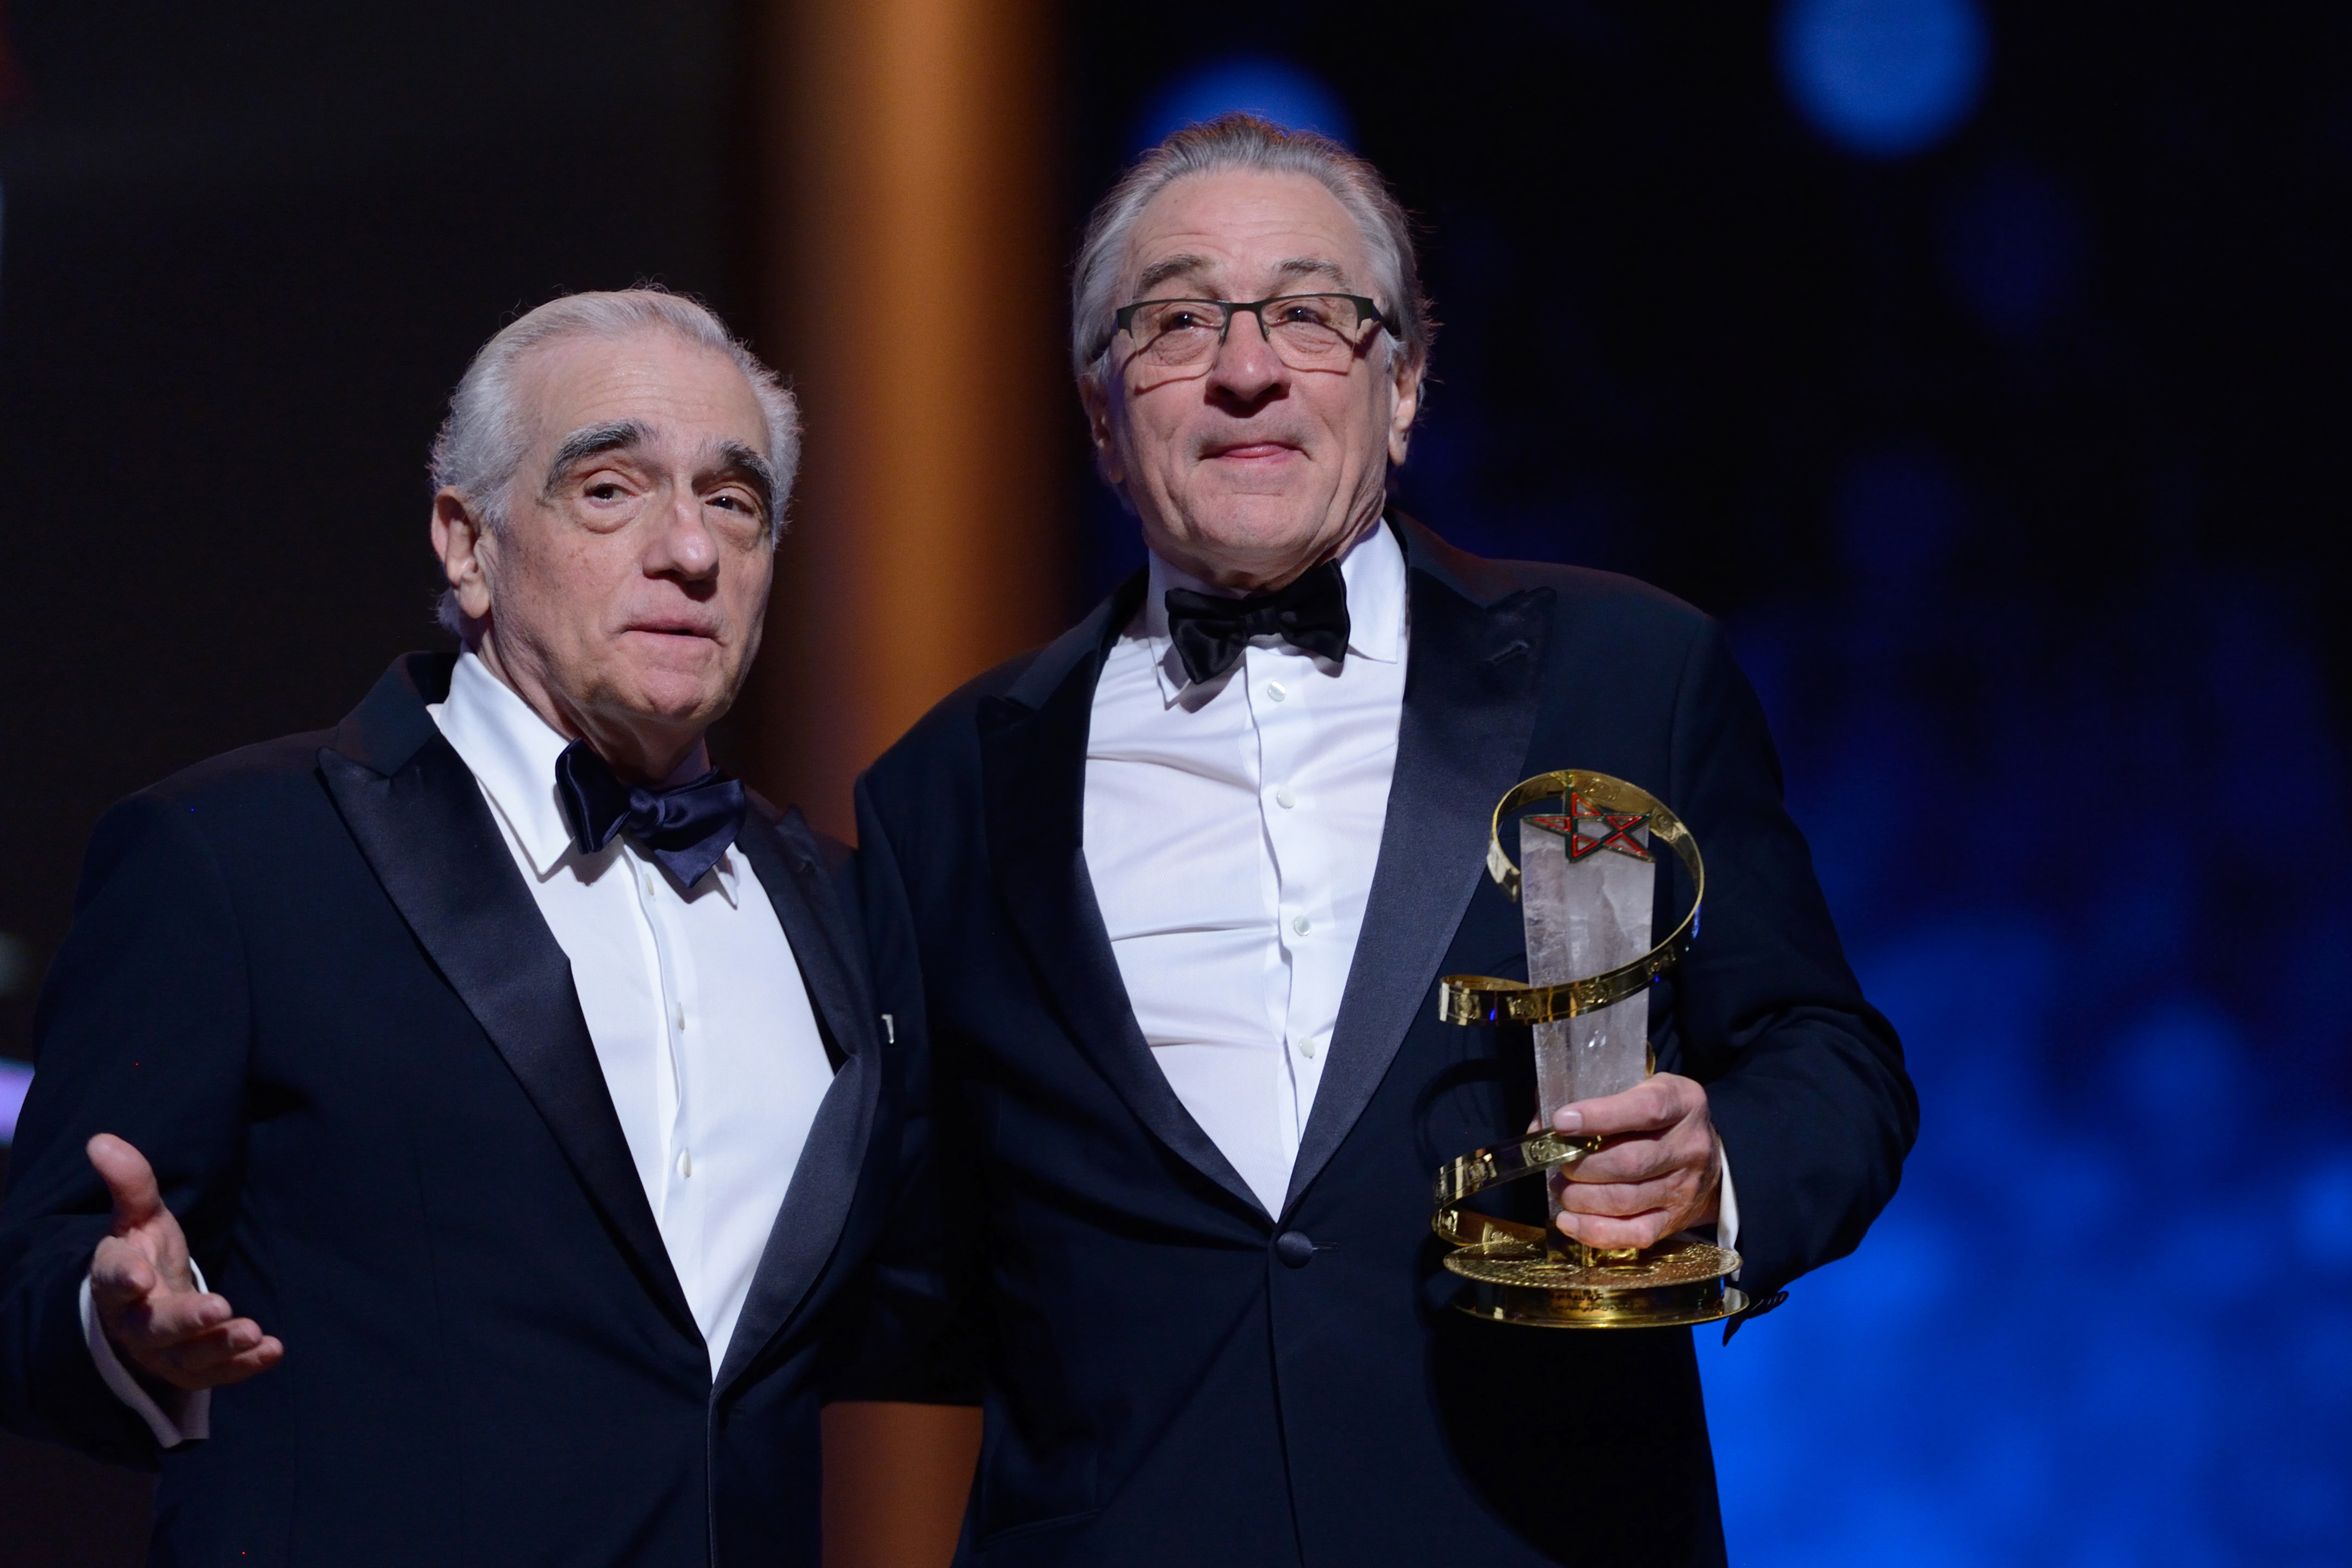 Martin Scorsese and Robert De Niro, back together on Netflix. Credit: PA